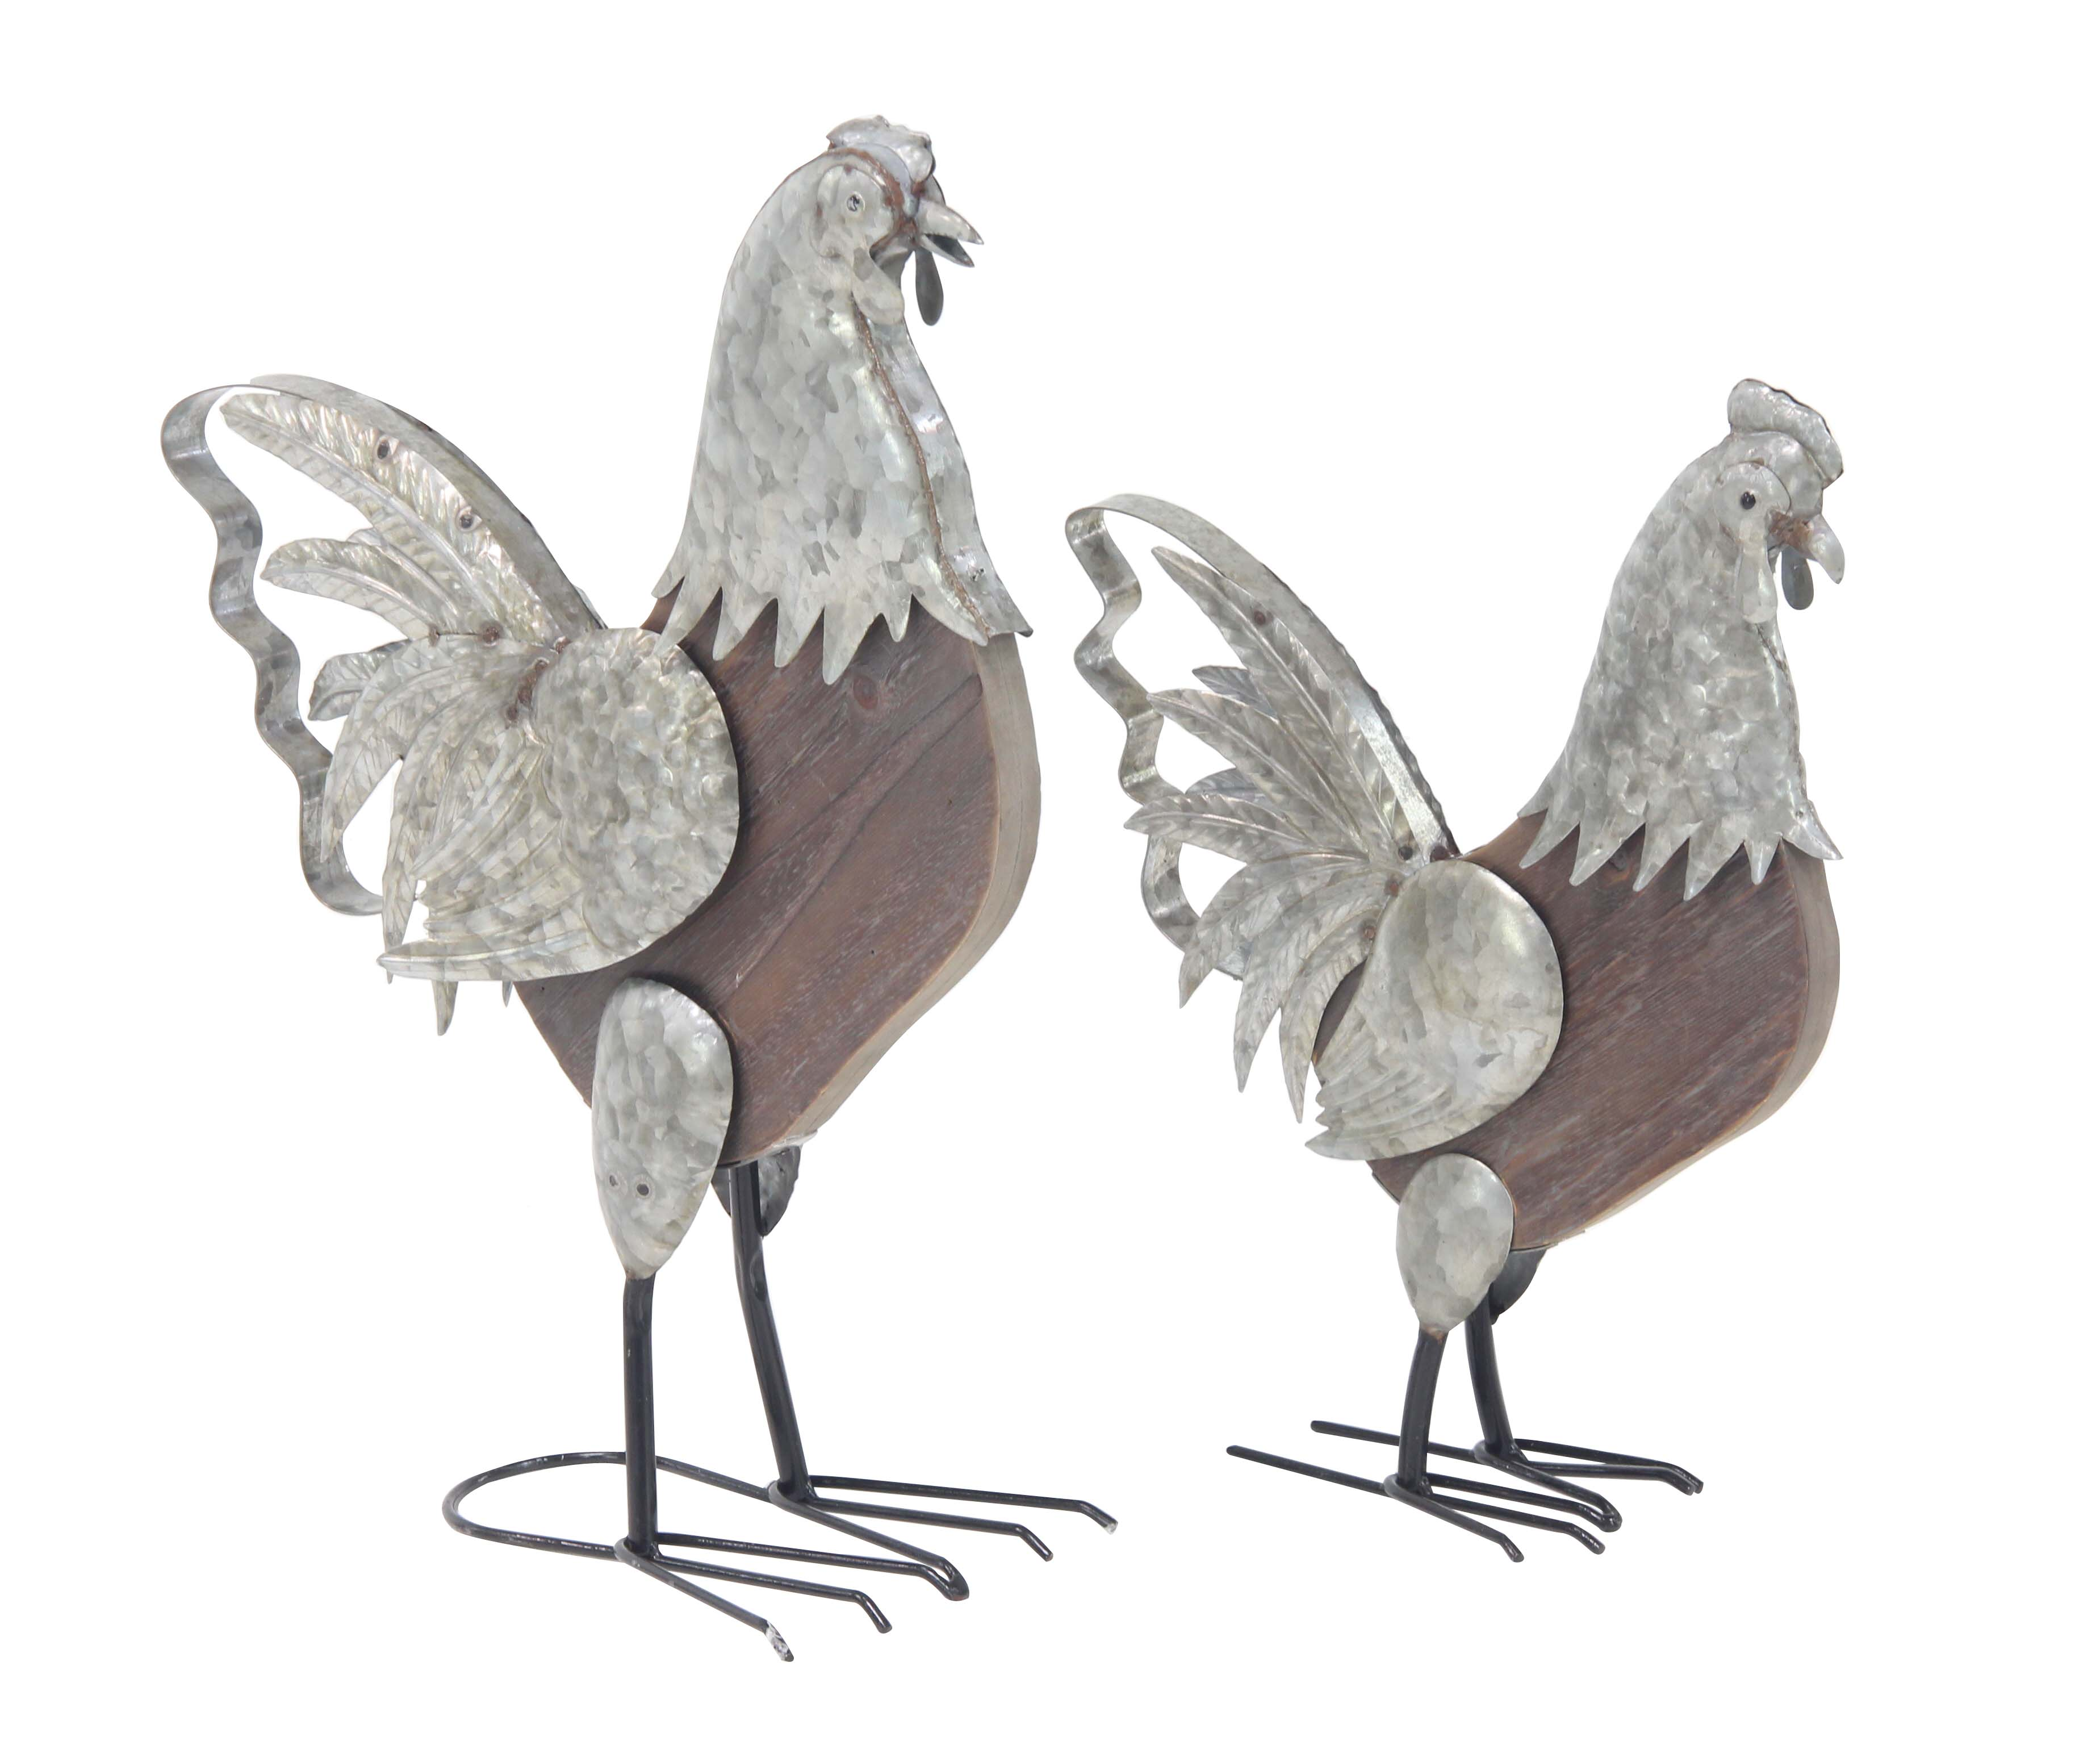 Decmode Farmhouse 16 and 20 Inch Metal and Fir Wood Rooster Sculptures Set of 2 by DecMode